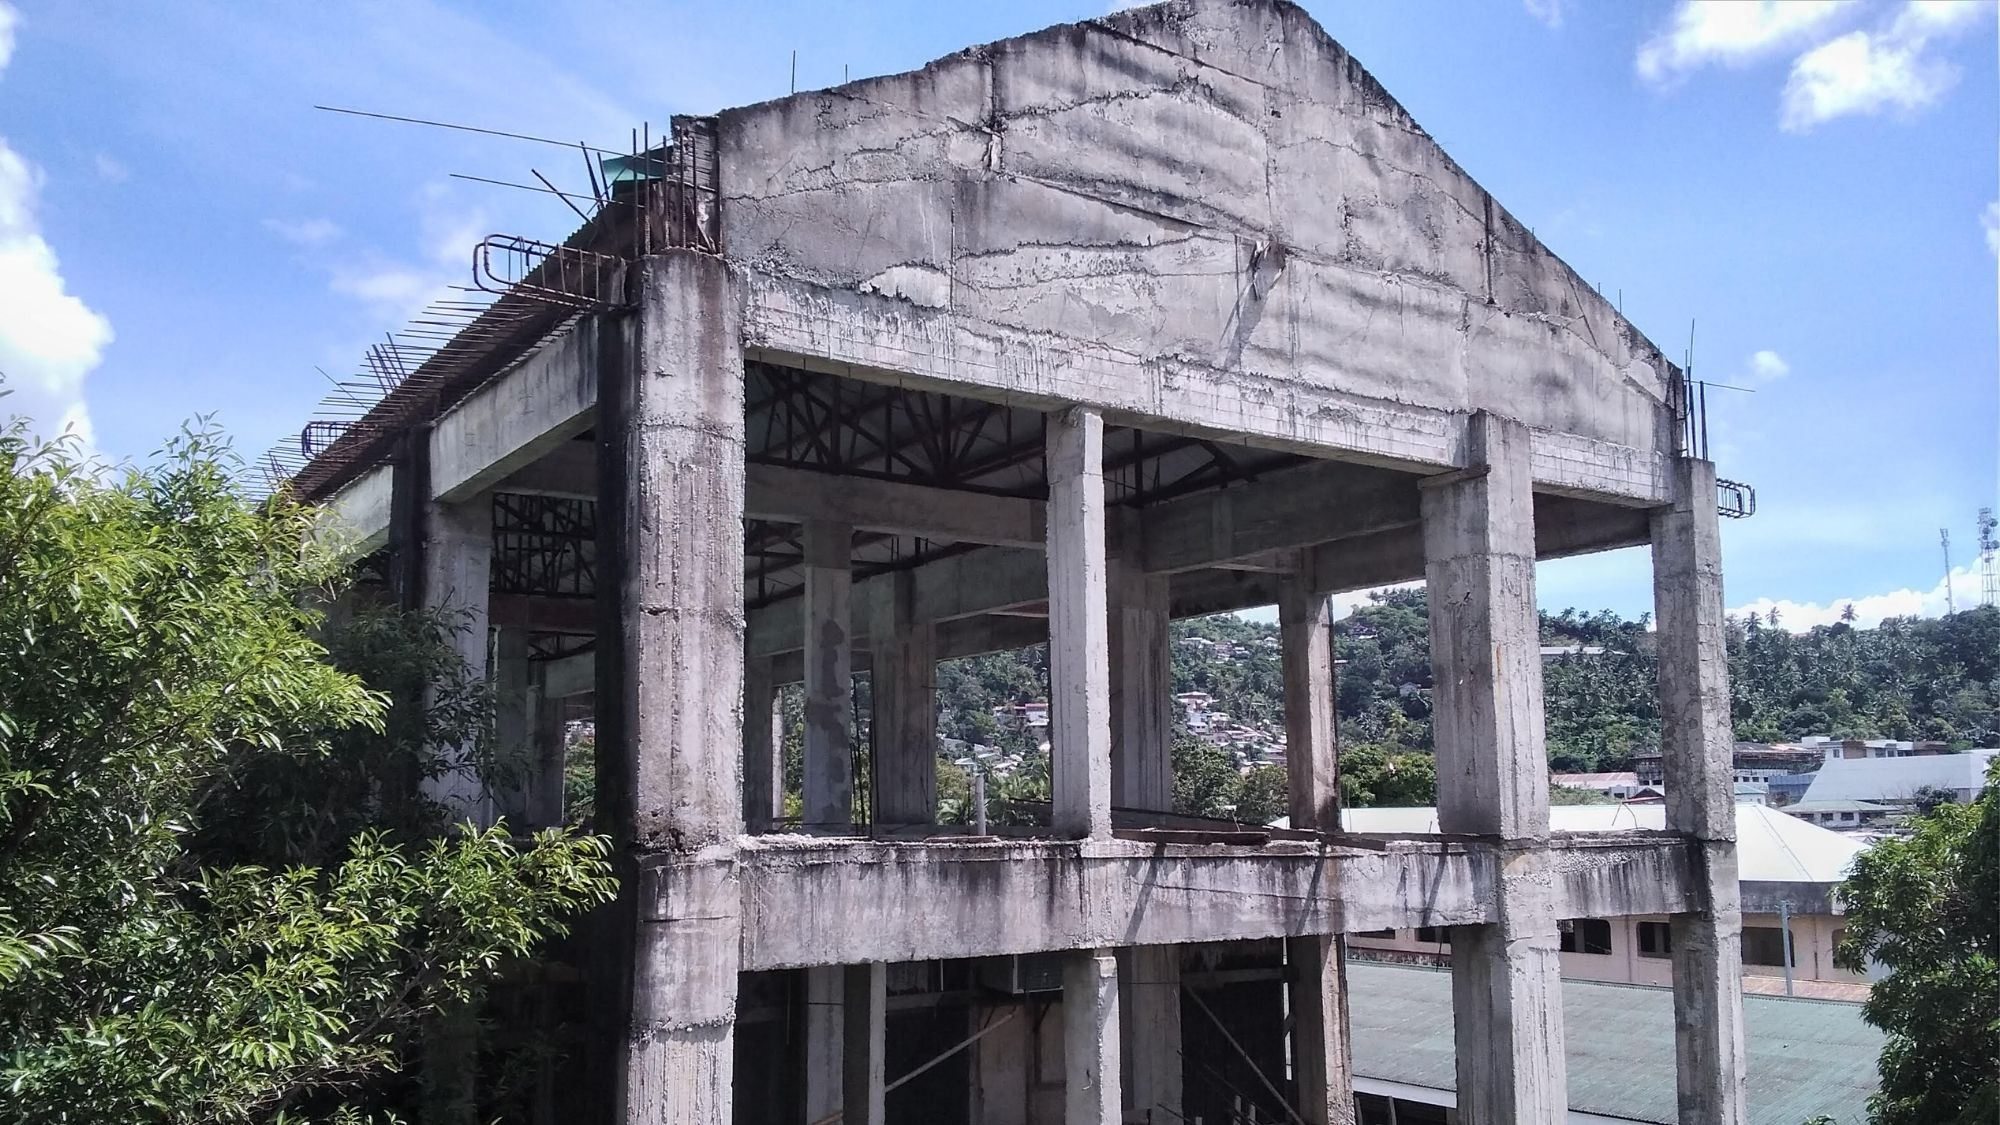 unfinished school building